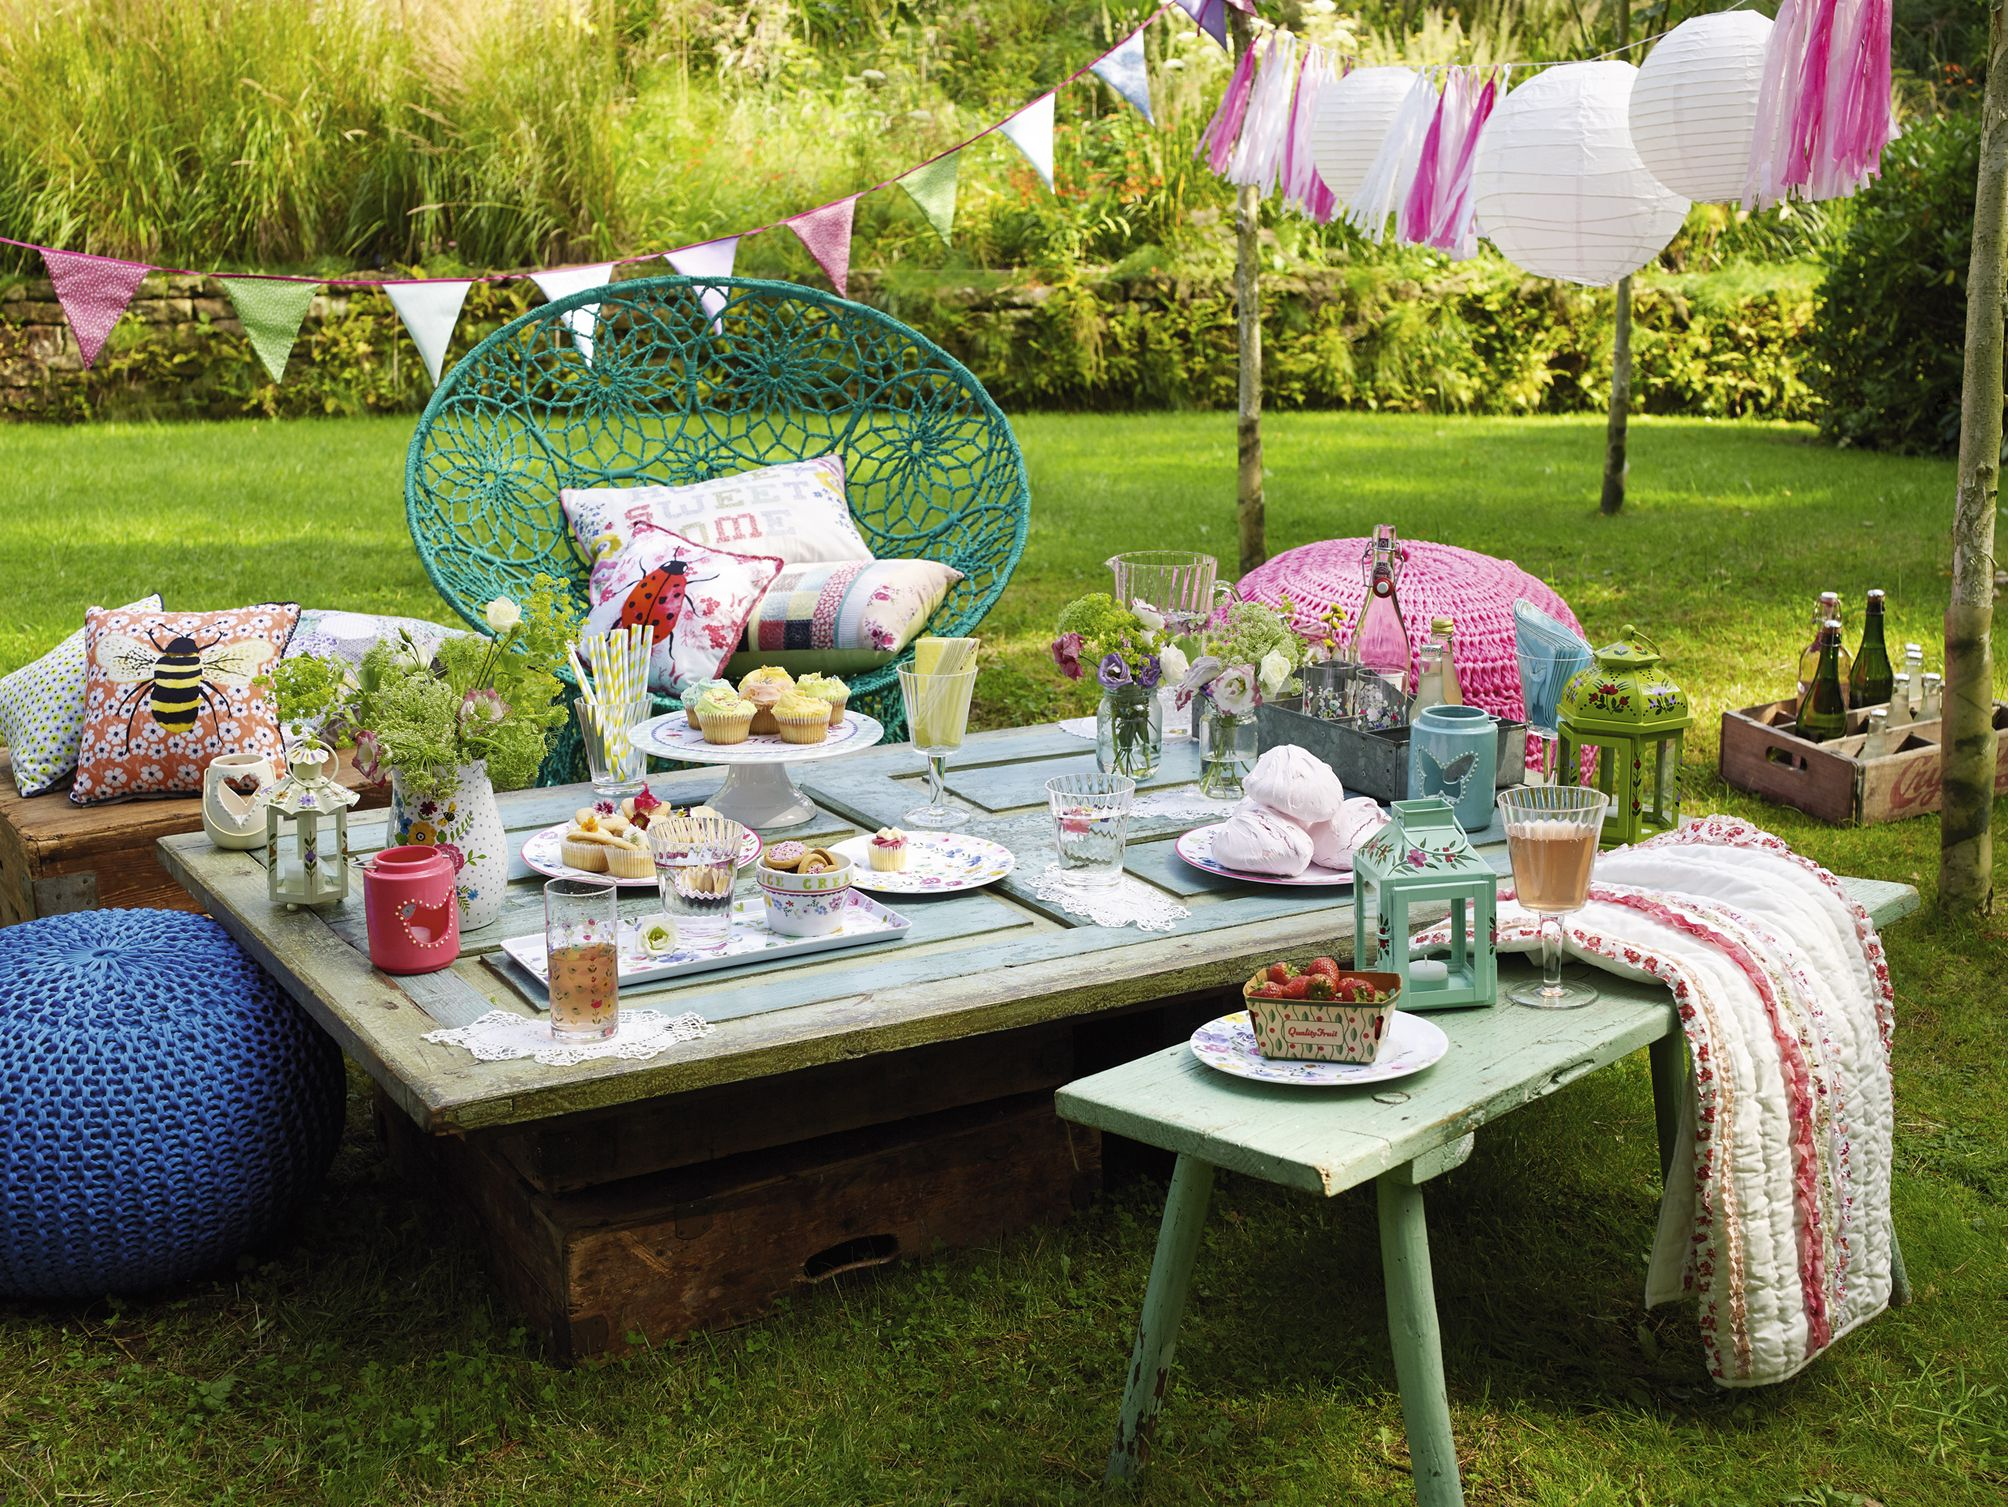 Garden Furniture From Ashley Thomas, Coming Soon #Ss14 #Sneakpeek